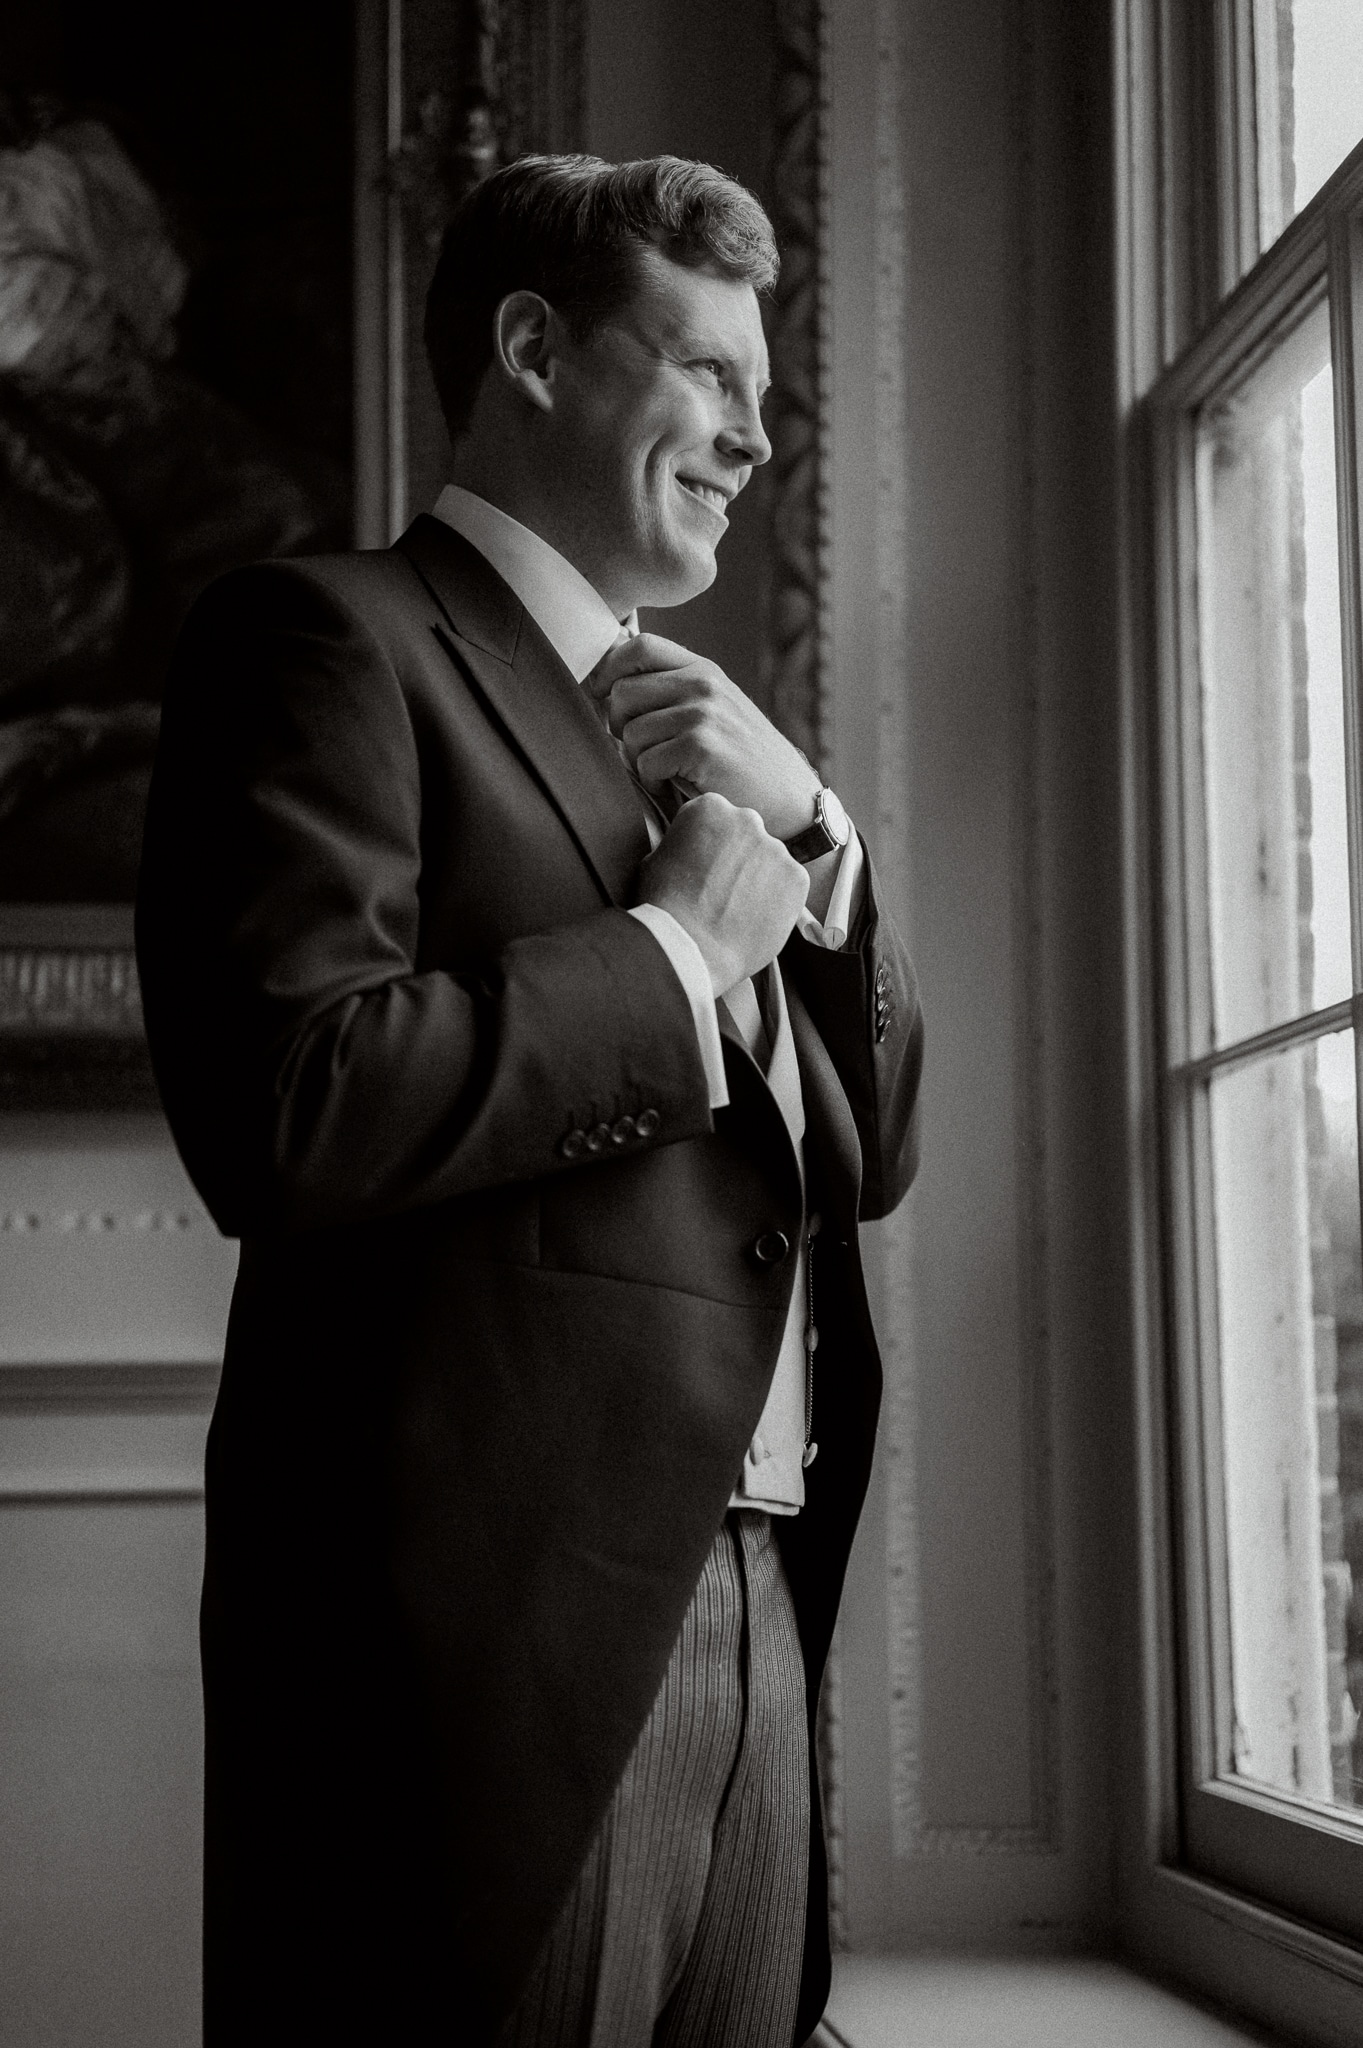 Groom on stairs at Brickwall House with East Sussex wedding photographer